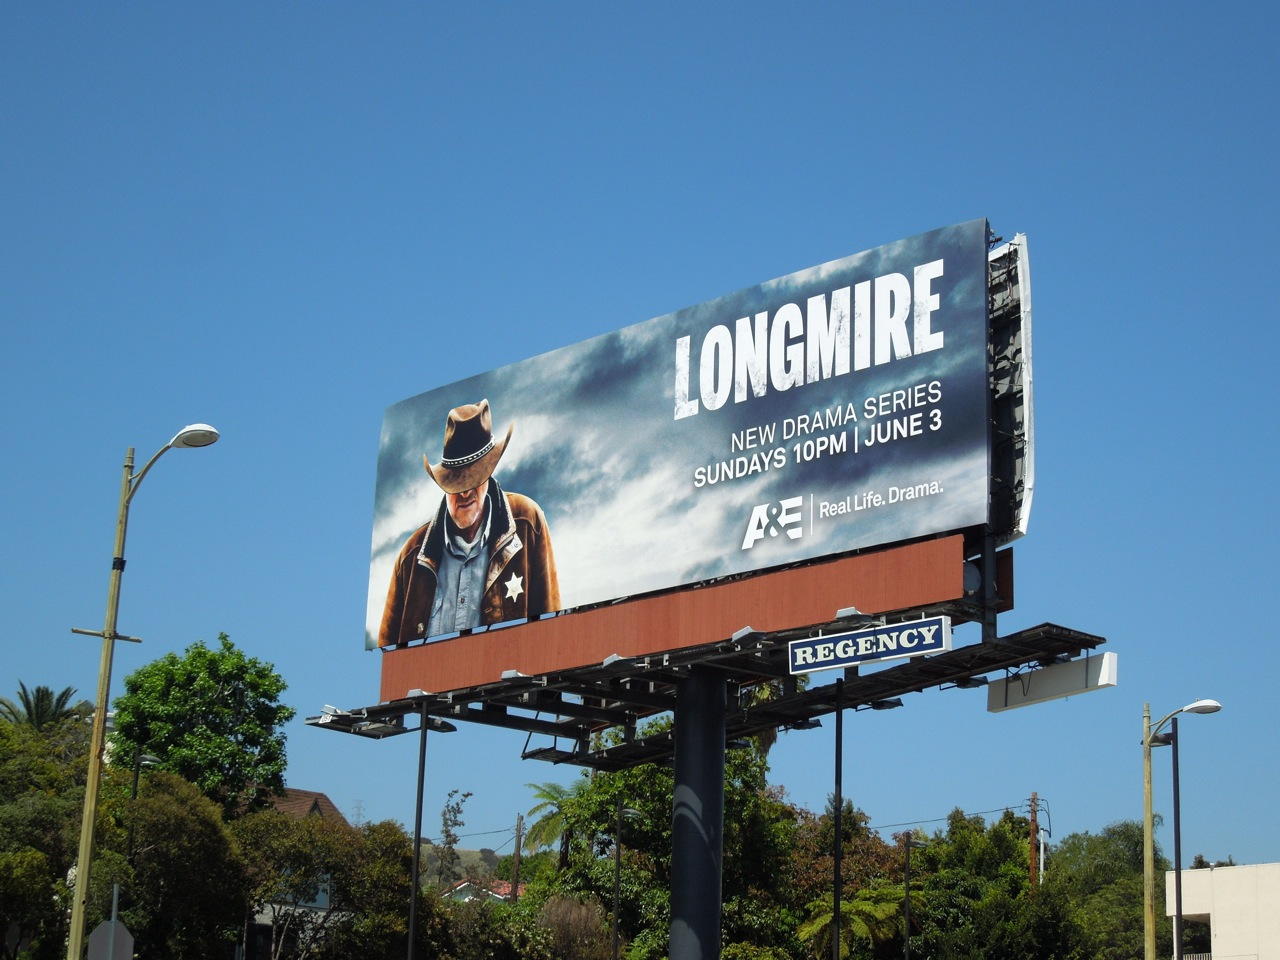 Major us longmire, which debuted on august 2013